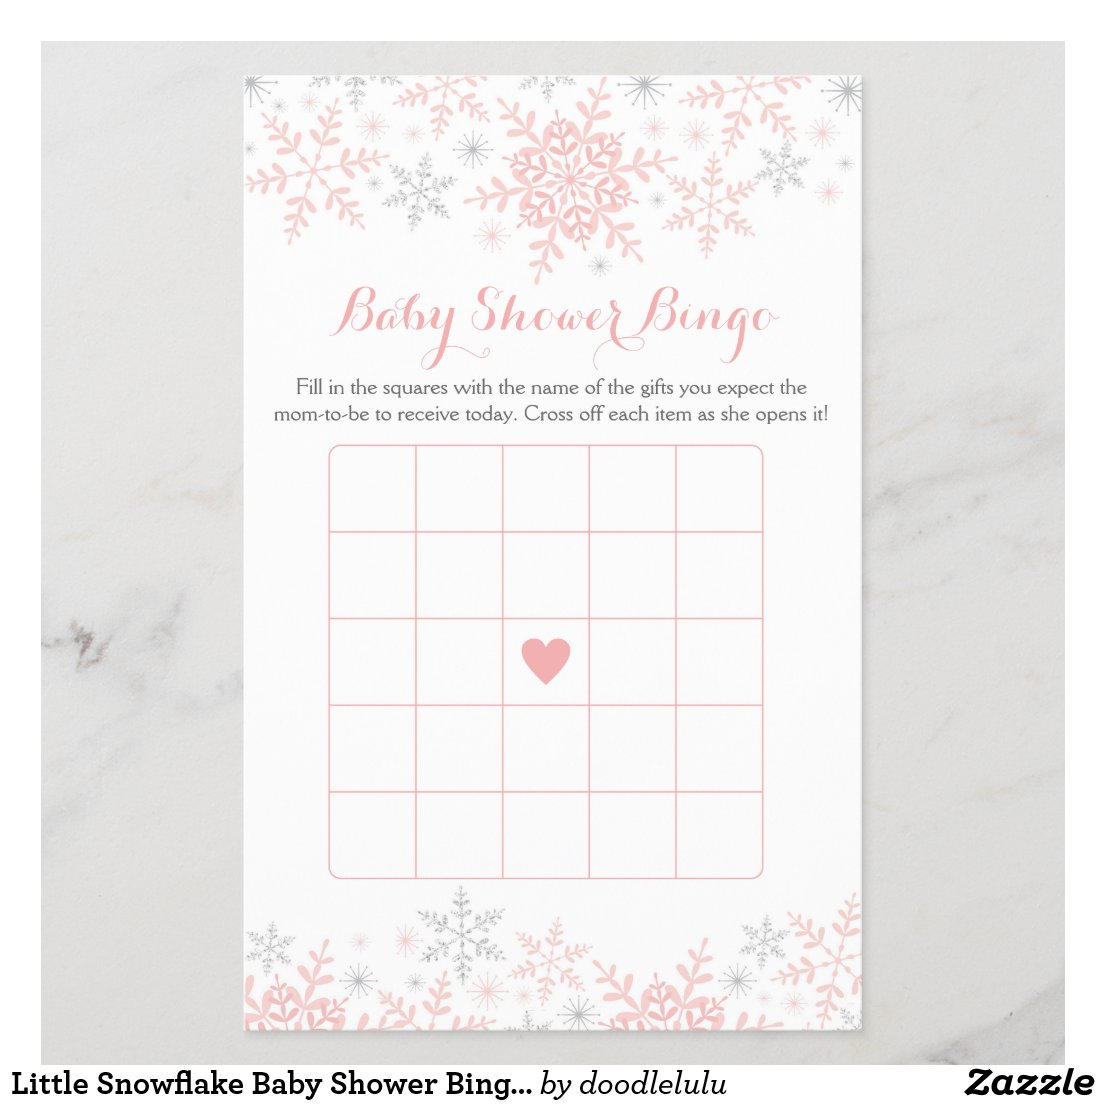 Little Snowflake Baby Shower Bingo Game